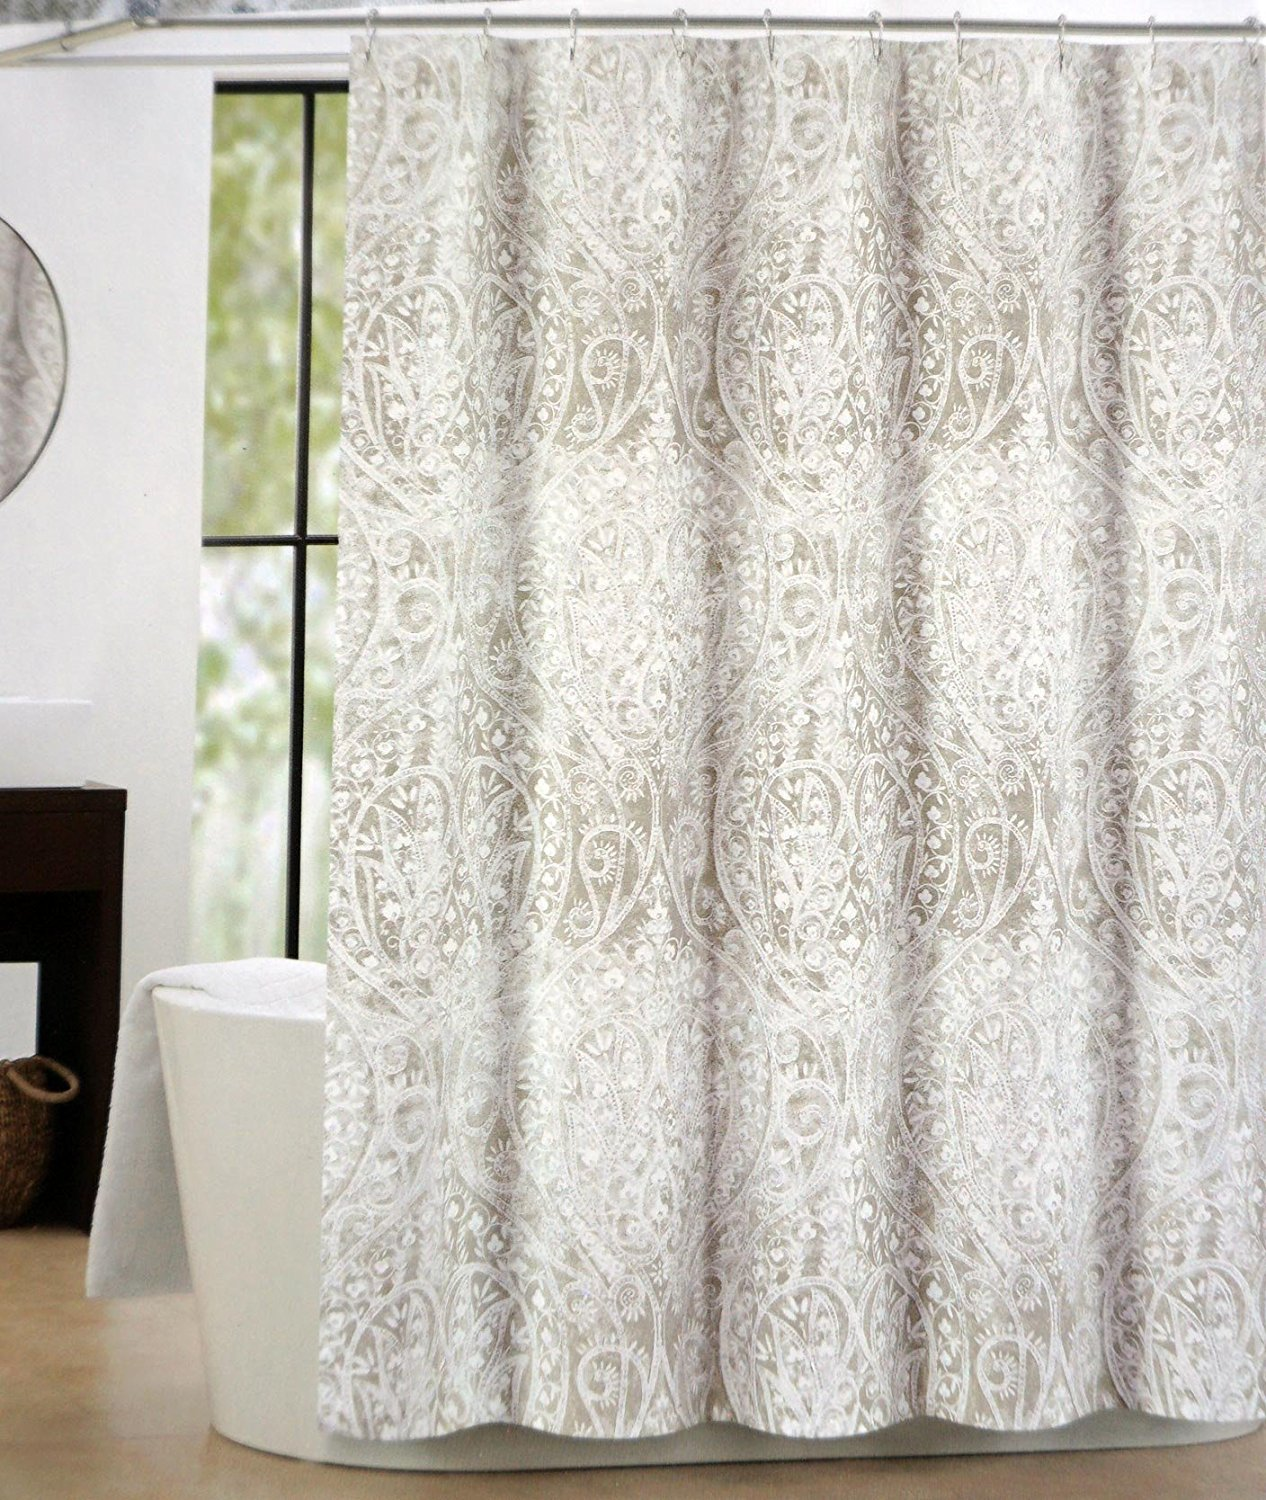 Amazon Tahari Fabric Shower Curtain Taupe Beige White Paisley Floral Pattern With Silver Highlights Nedie Home Kitchen